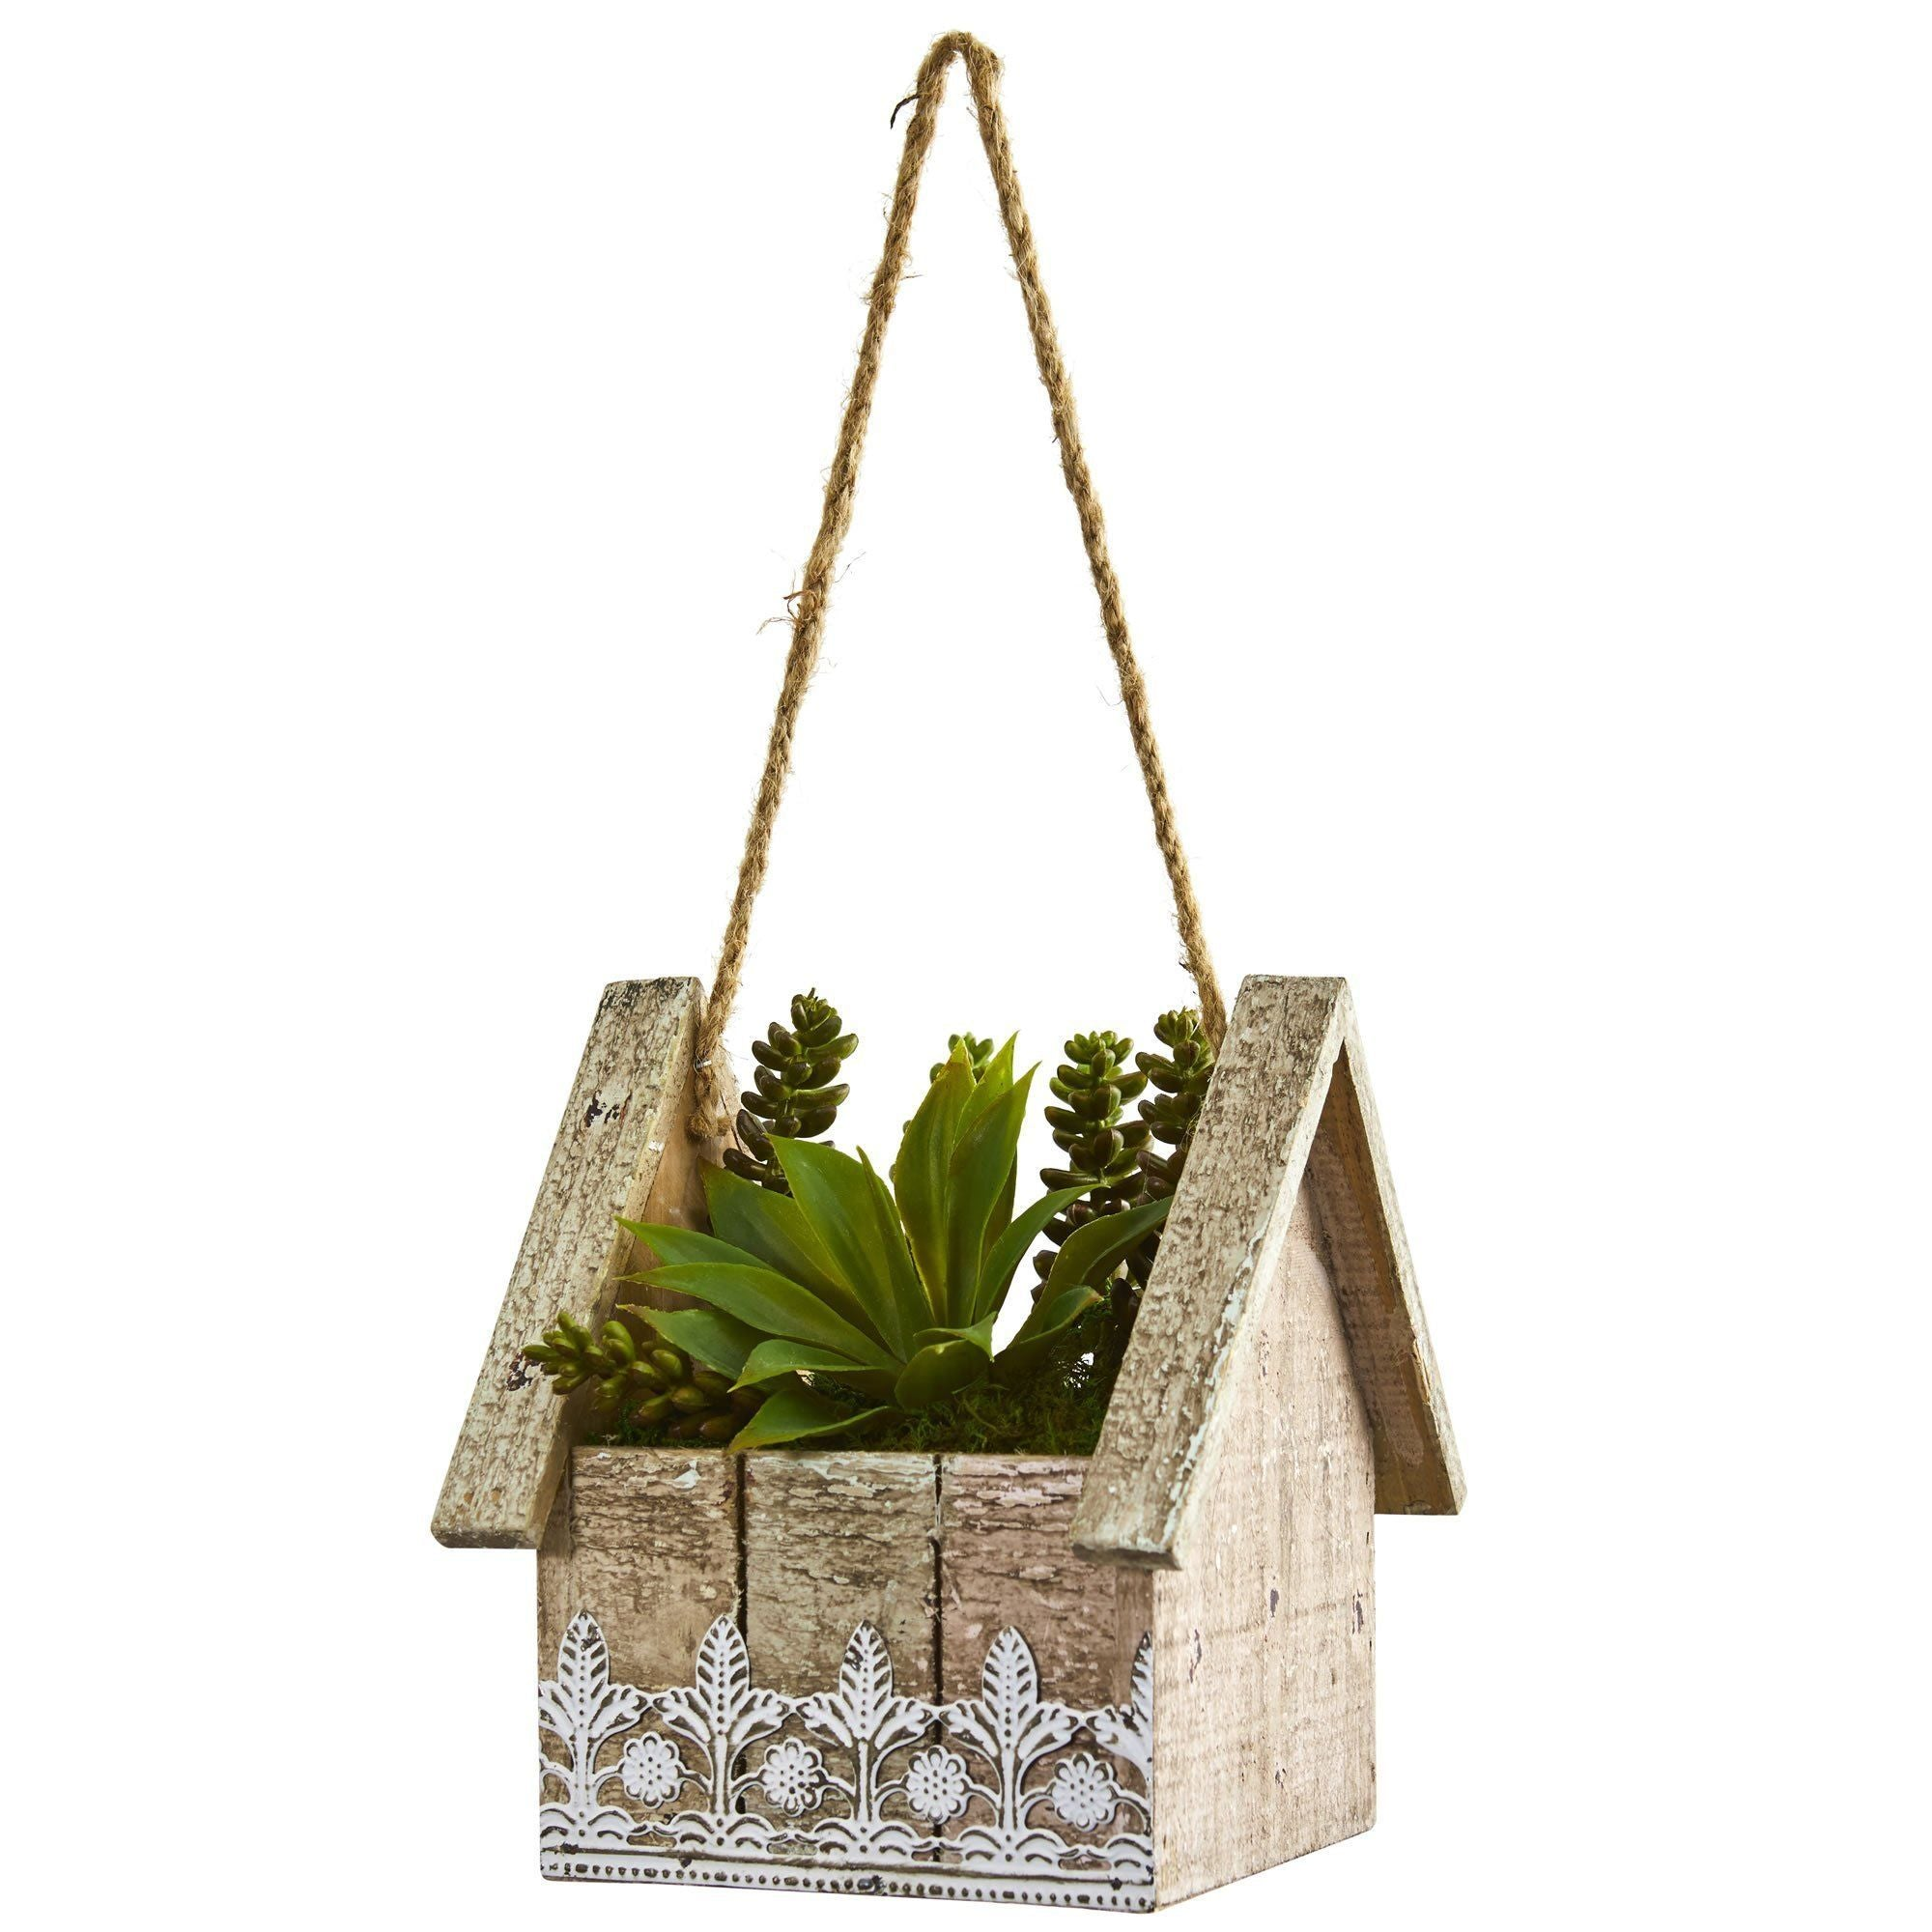 Succulent Garden Artificial Plant In Birdhouse Hanging Planter Nearly Natural